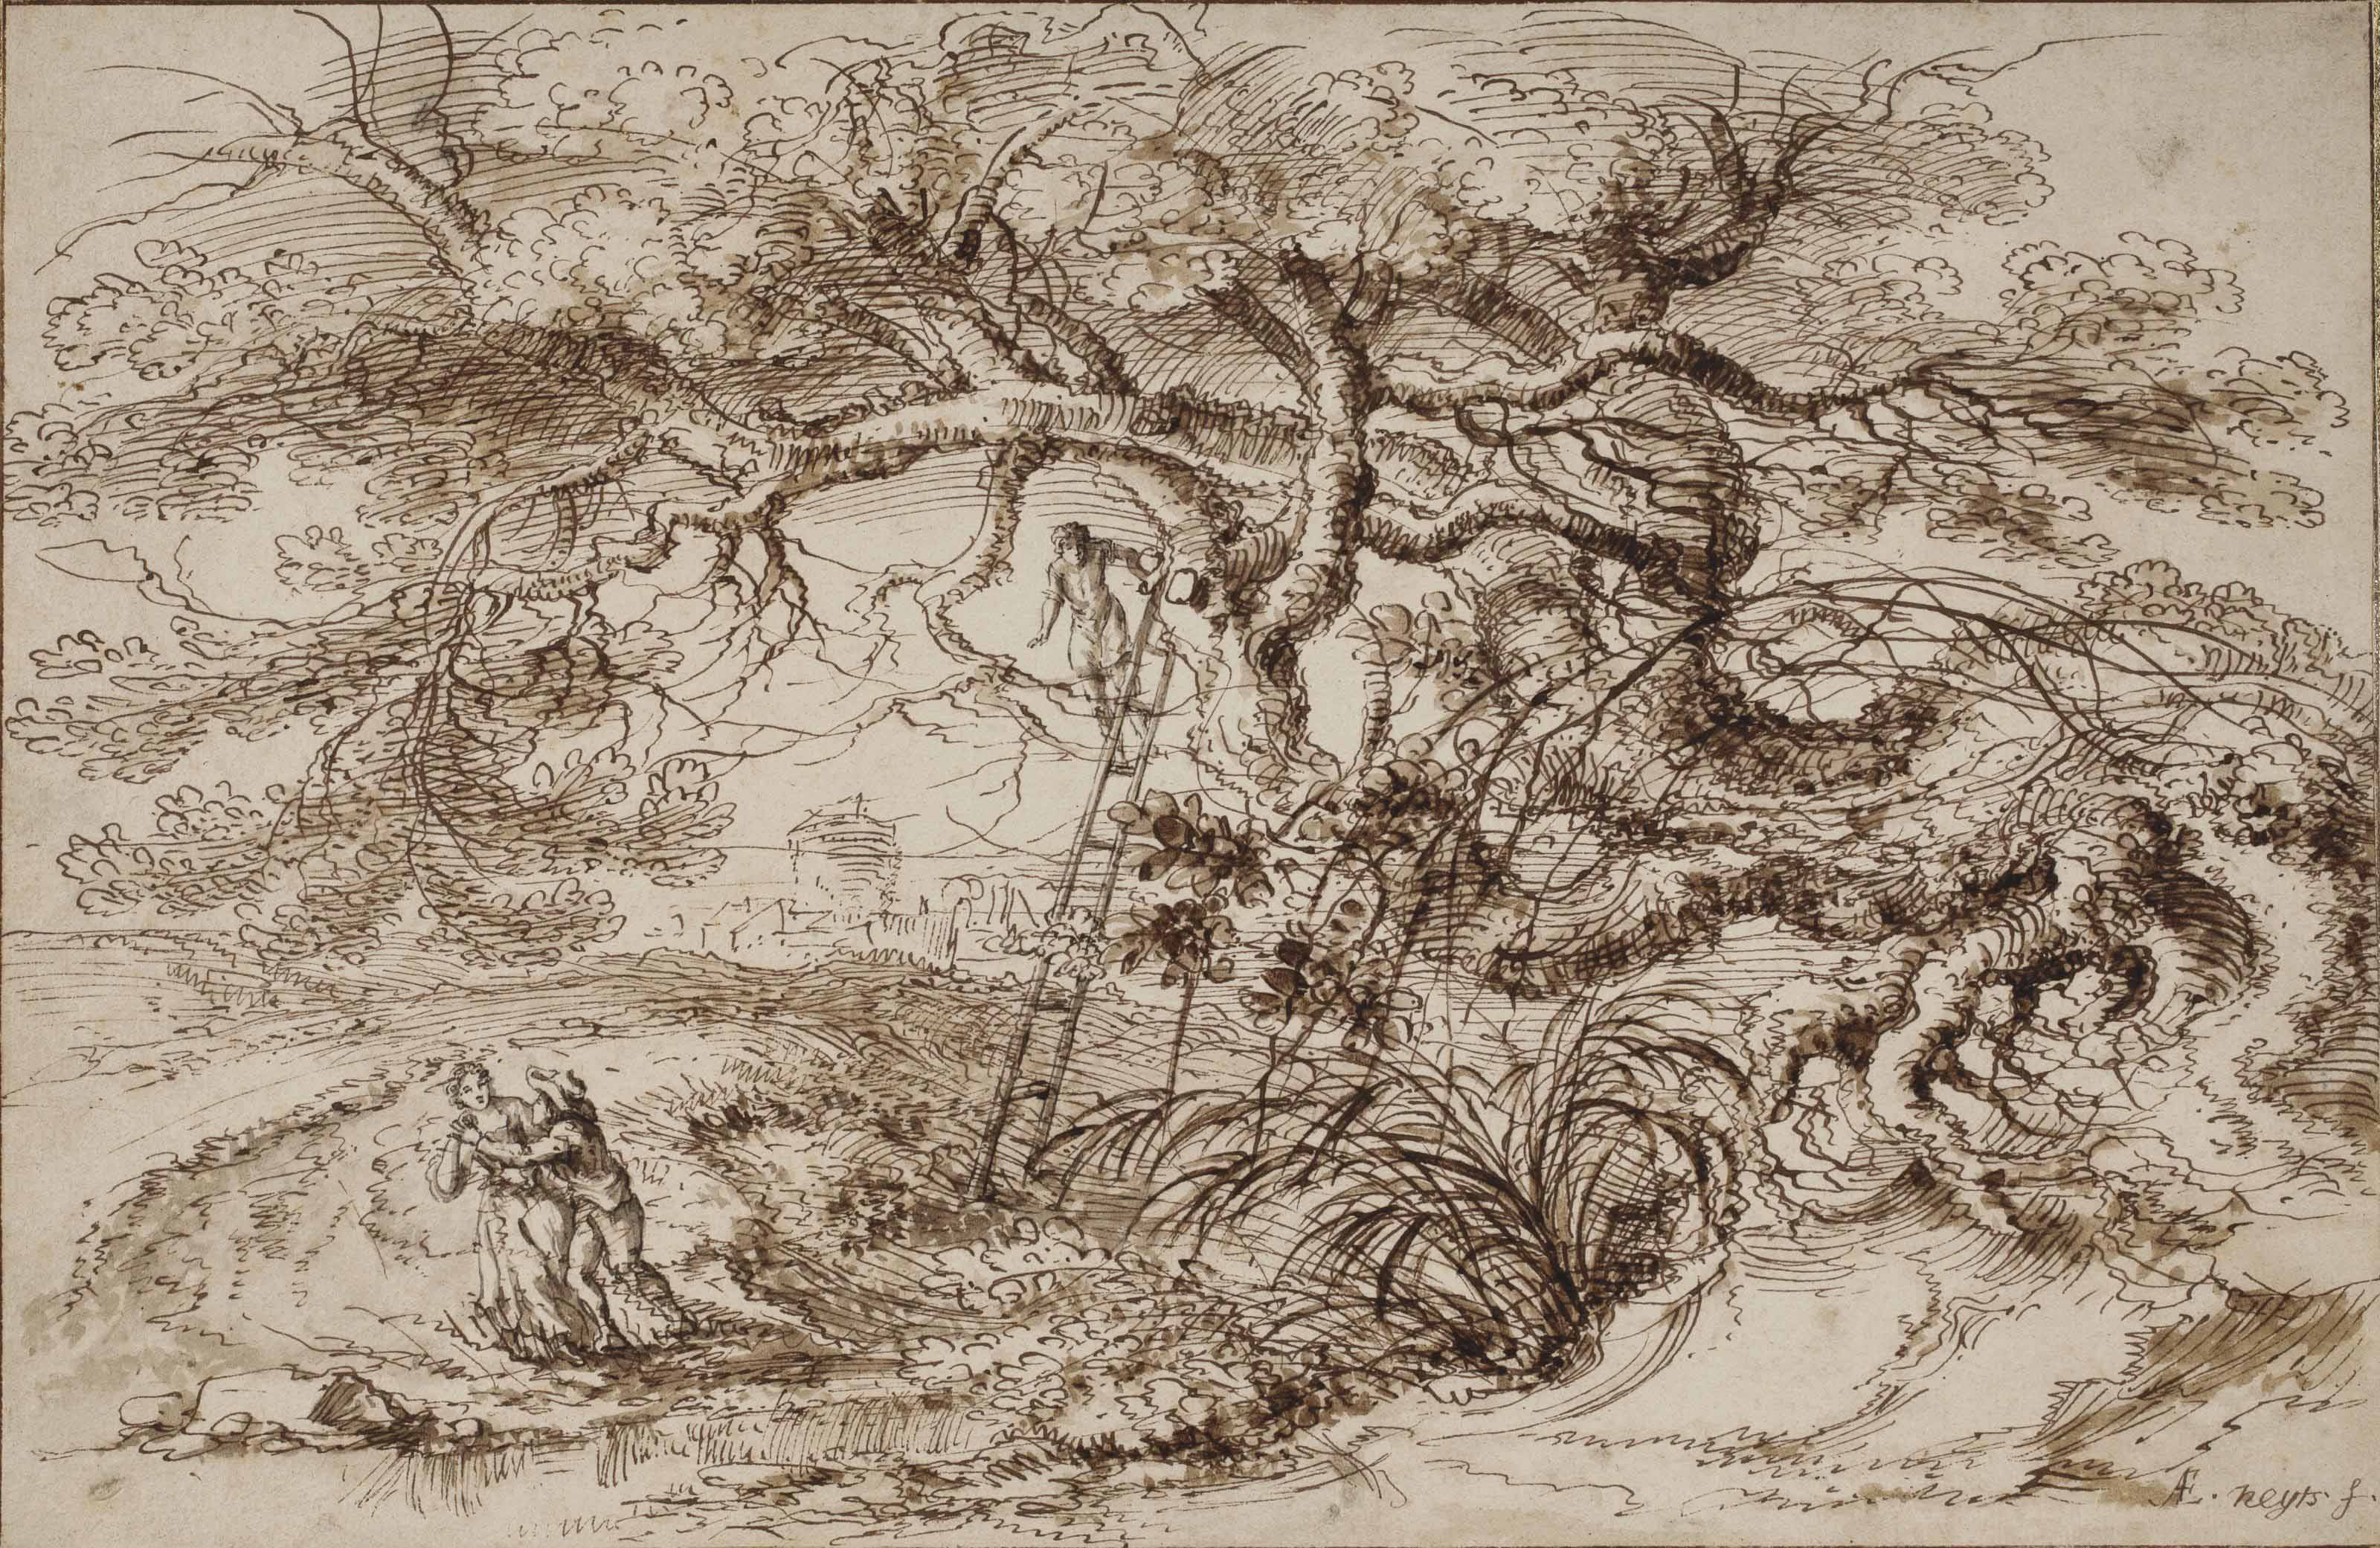 A landscape with a monumental tree and an amorous couple